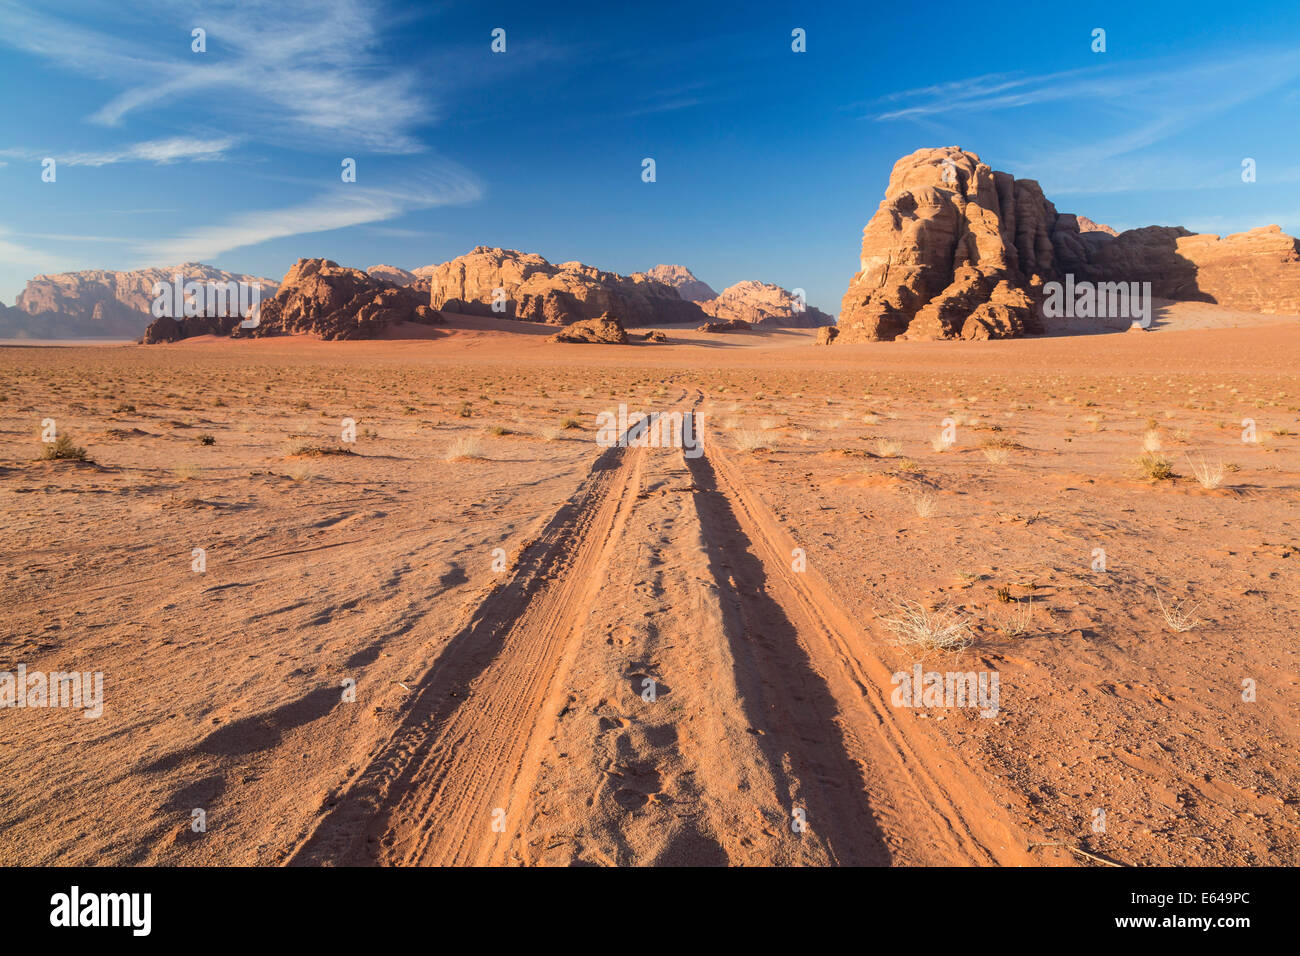 Tracks in the desert, Wadi Rum, Jordan Stock Photo